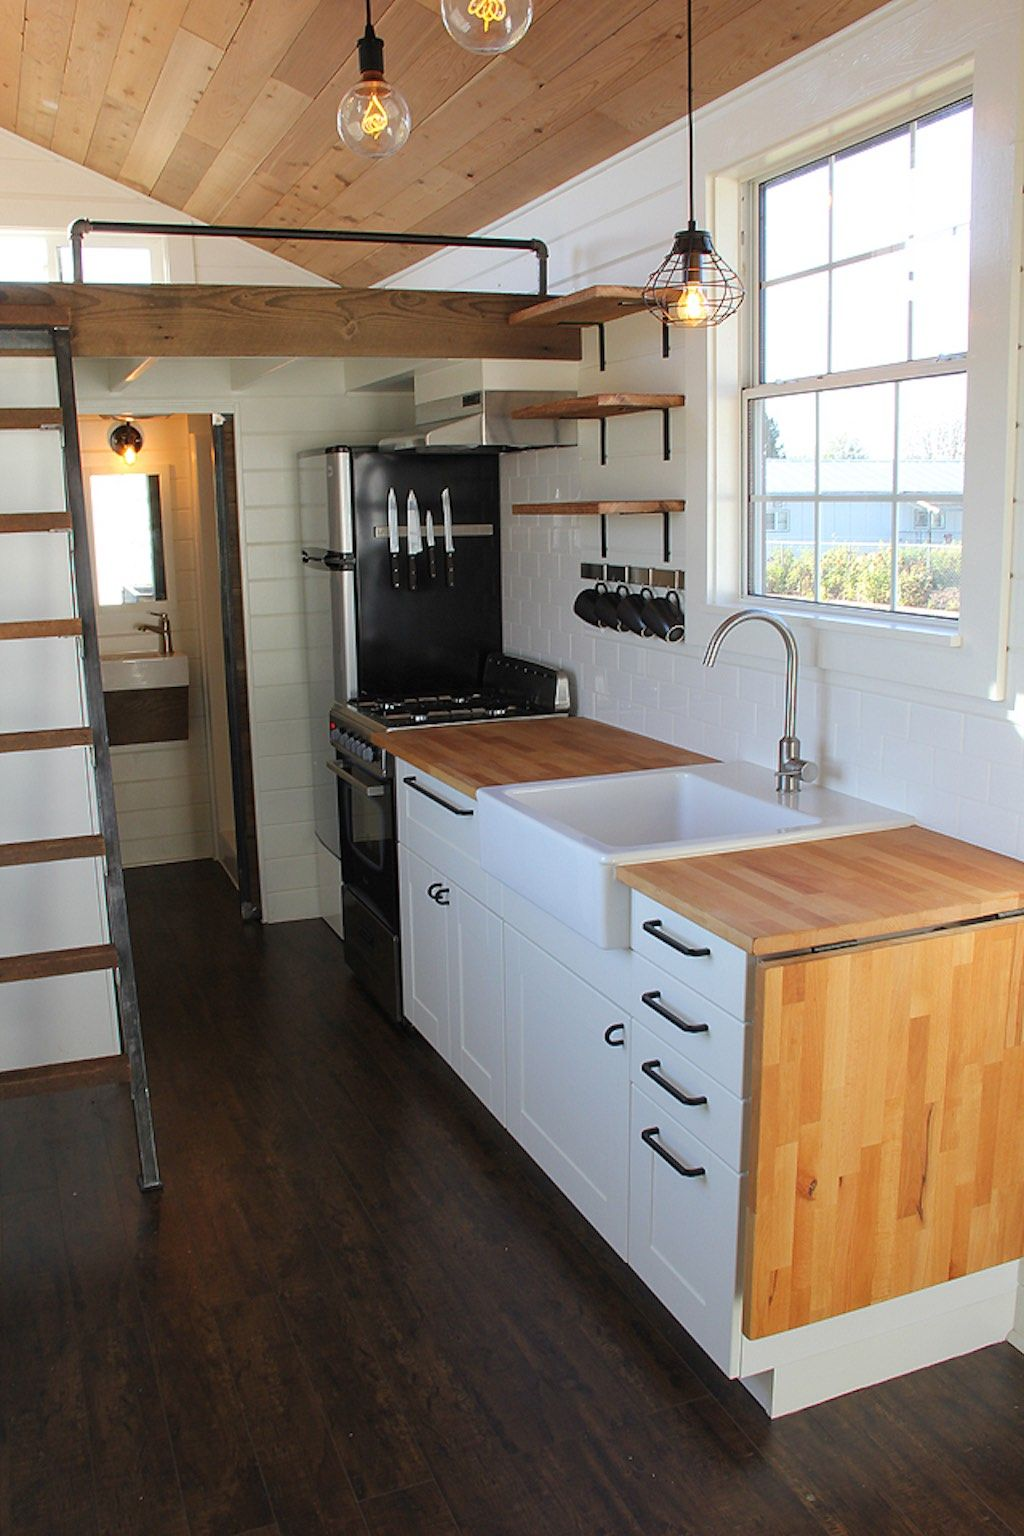 Rustic Industrial Tiny House Kitchen Small House Kitchen Design Kitchen Remodel Small